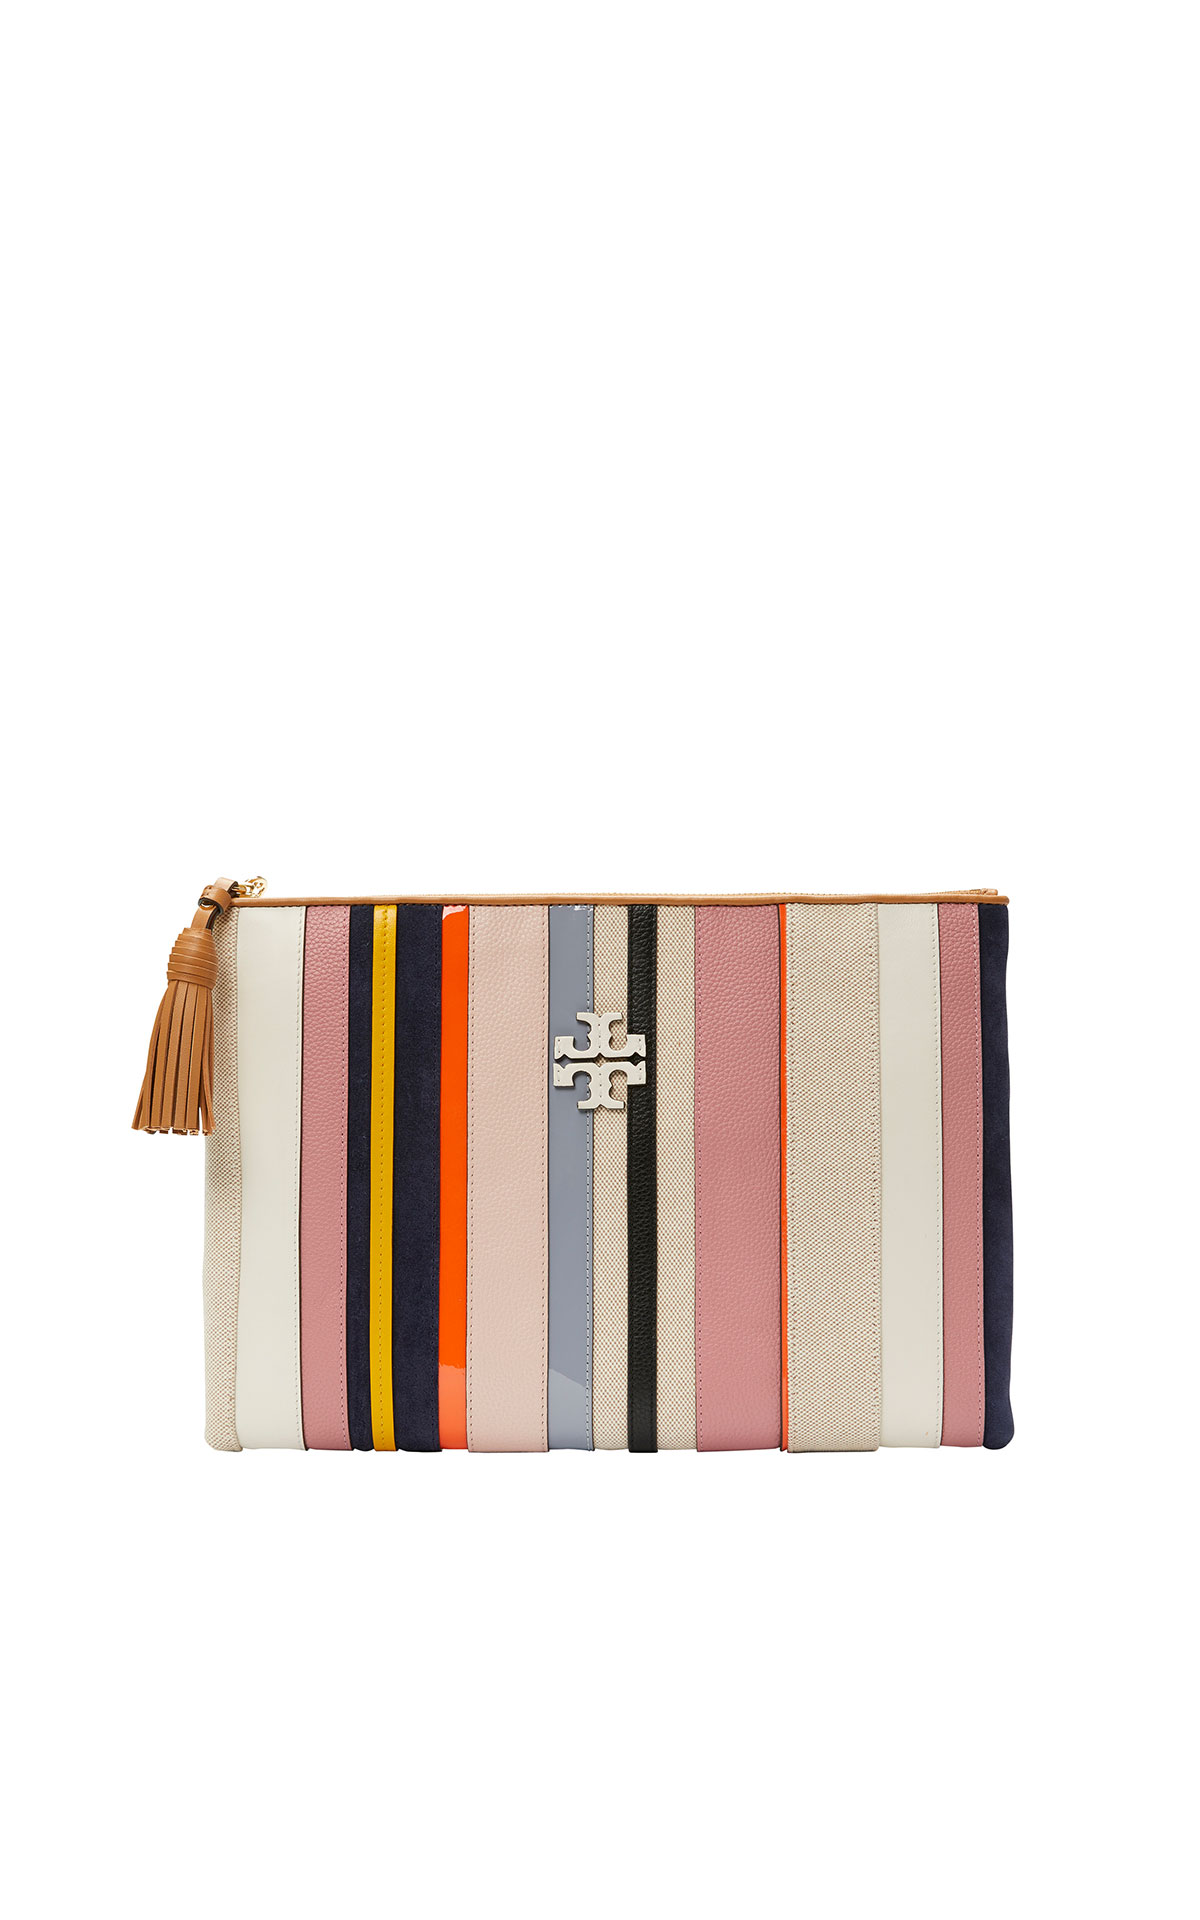 Tory Burch Web pouch from Bicester Village